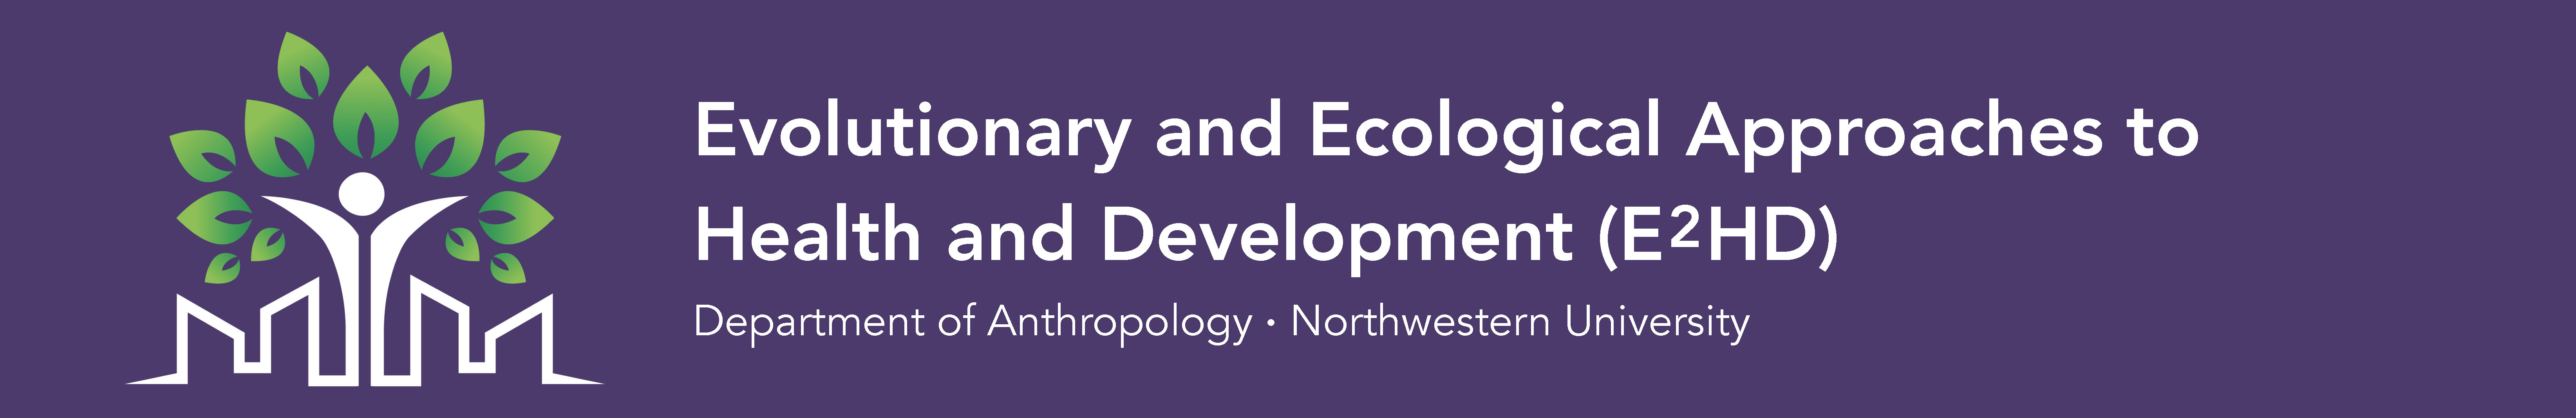 Evolutionary & Ecological Approaches to Health and Development